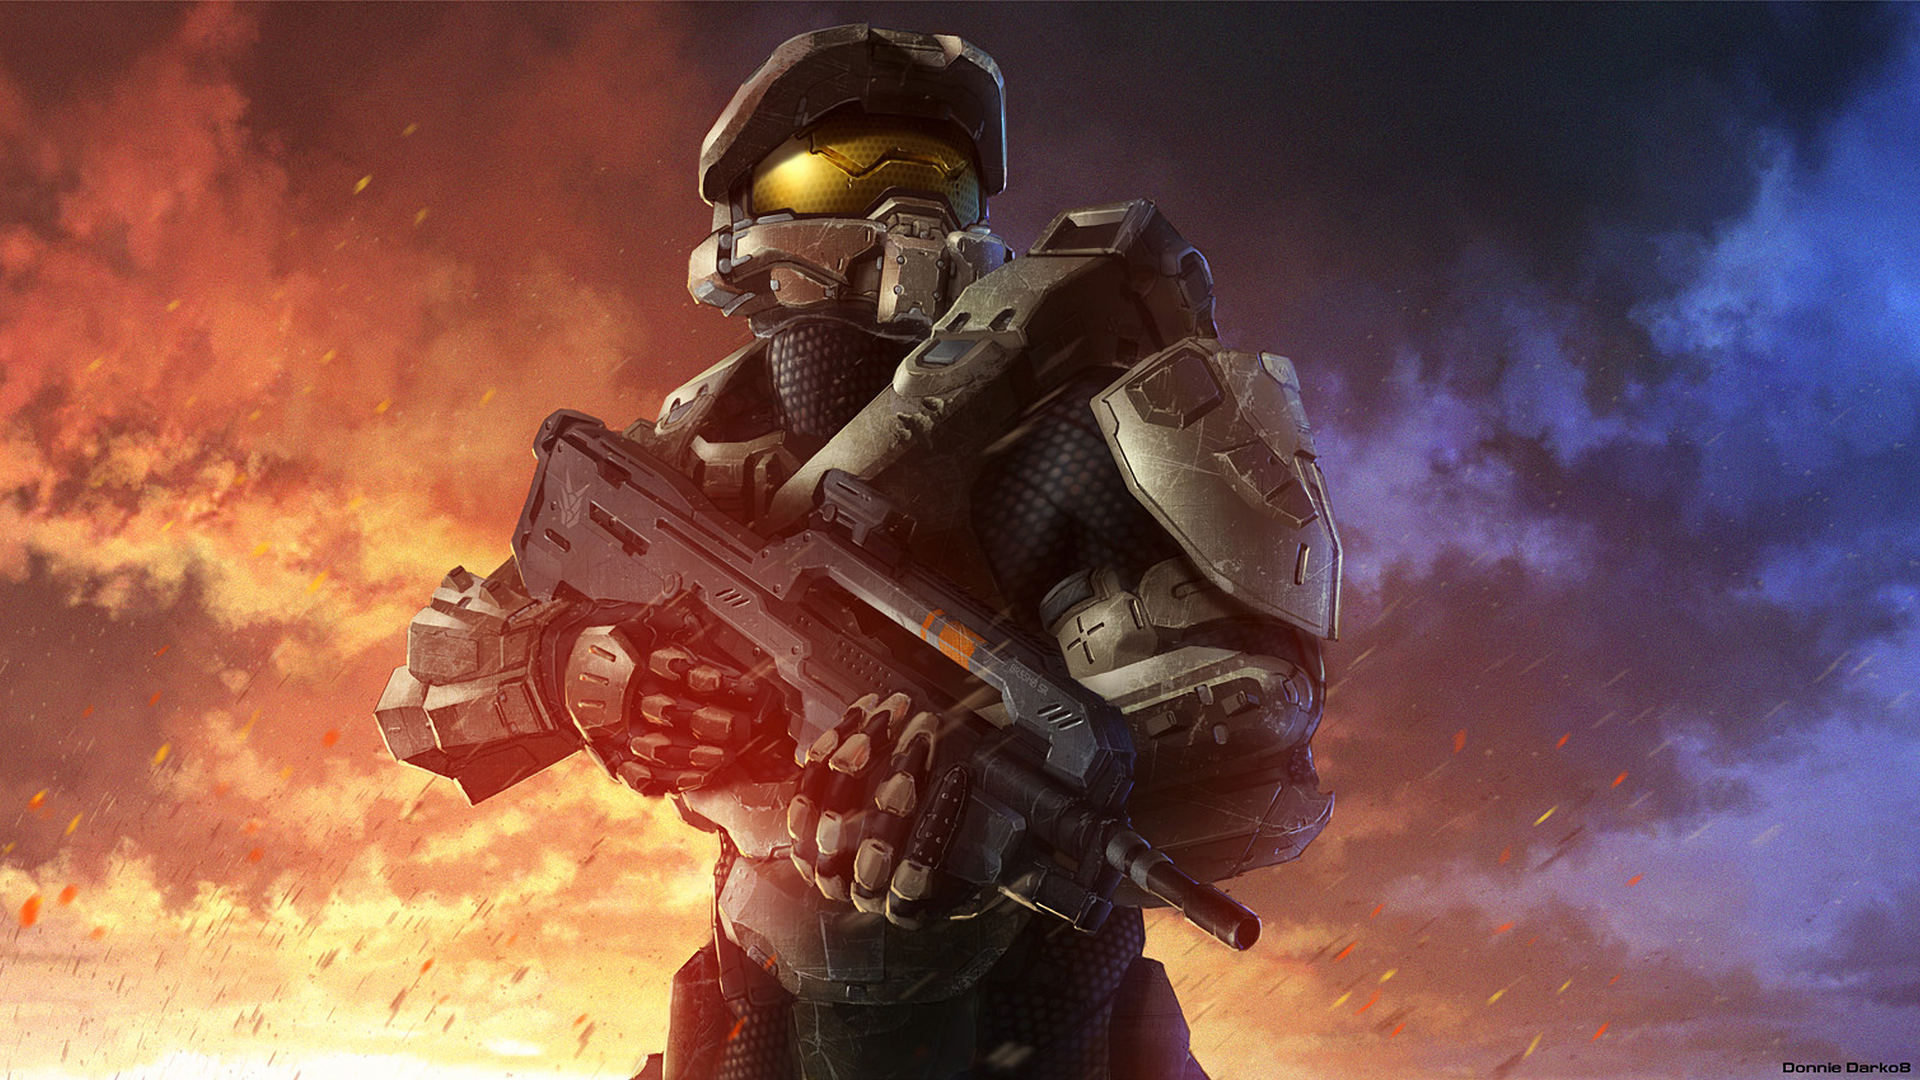 Master Chief image.jpg